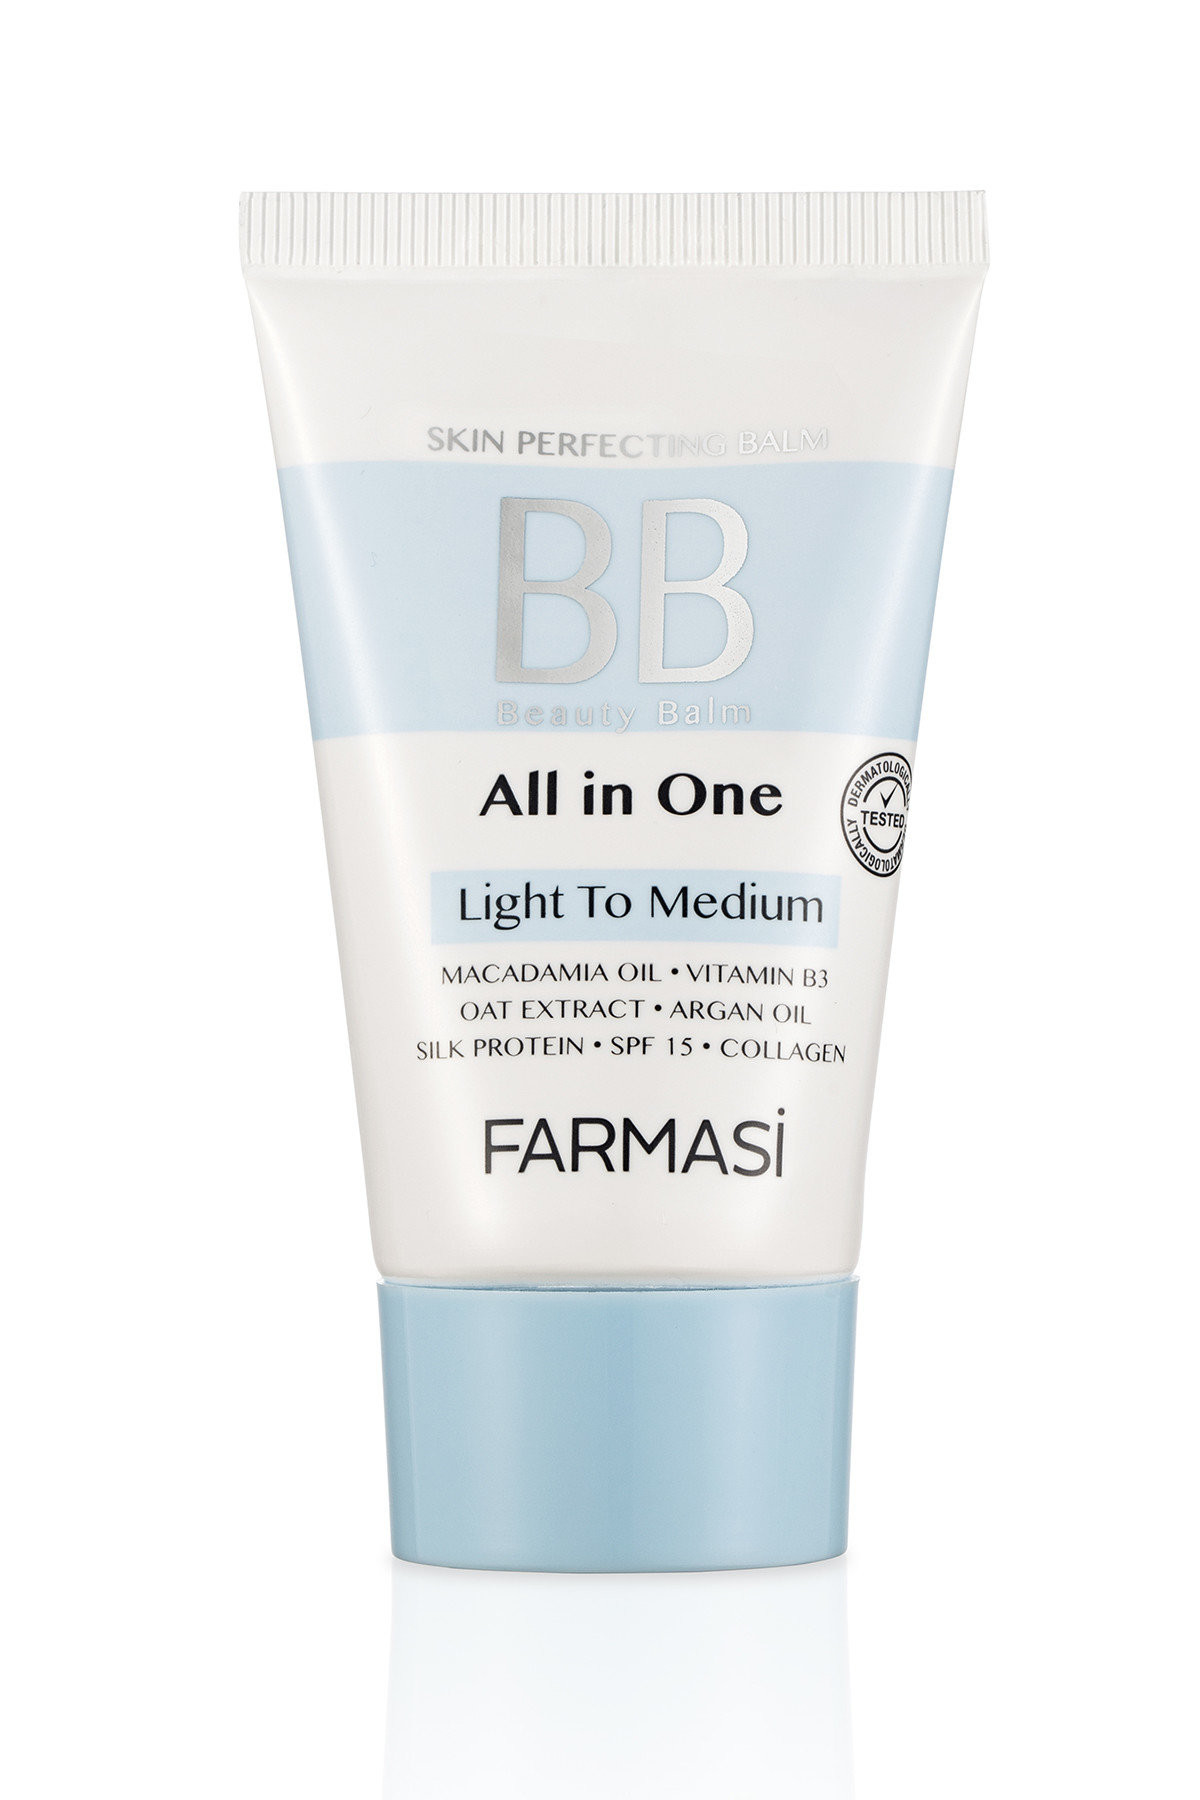 Farmasi Bb Krem Açık & Orta Ton – All İn One 50 Ml 8690131764005 – 24.99 TL